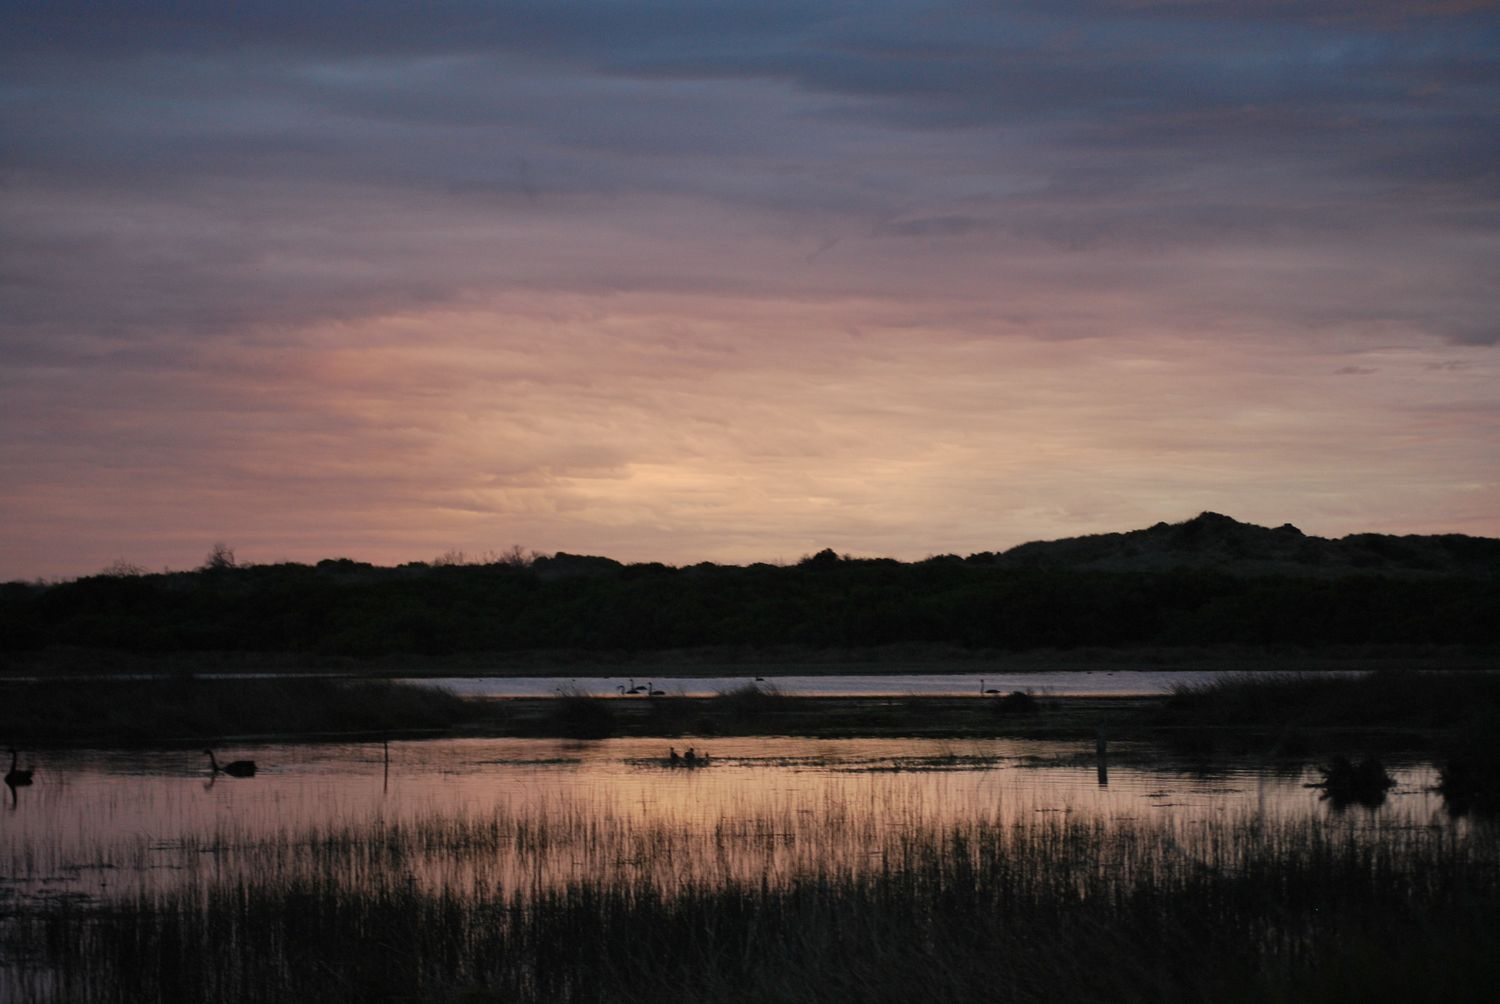 A photograph of Belfast Coastal Reserve at sunset. There is a wetland with lots of reeds and swans. In the background there are hills.